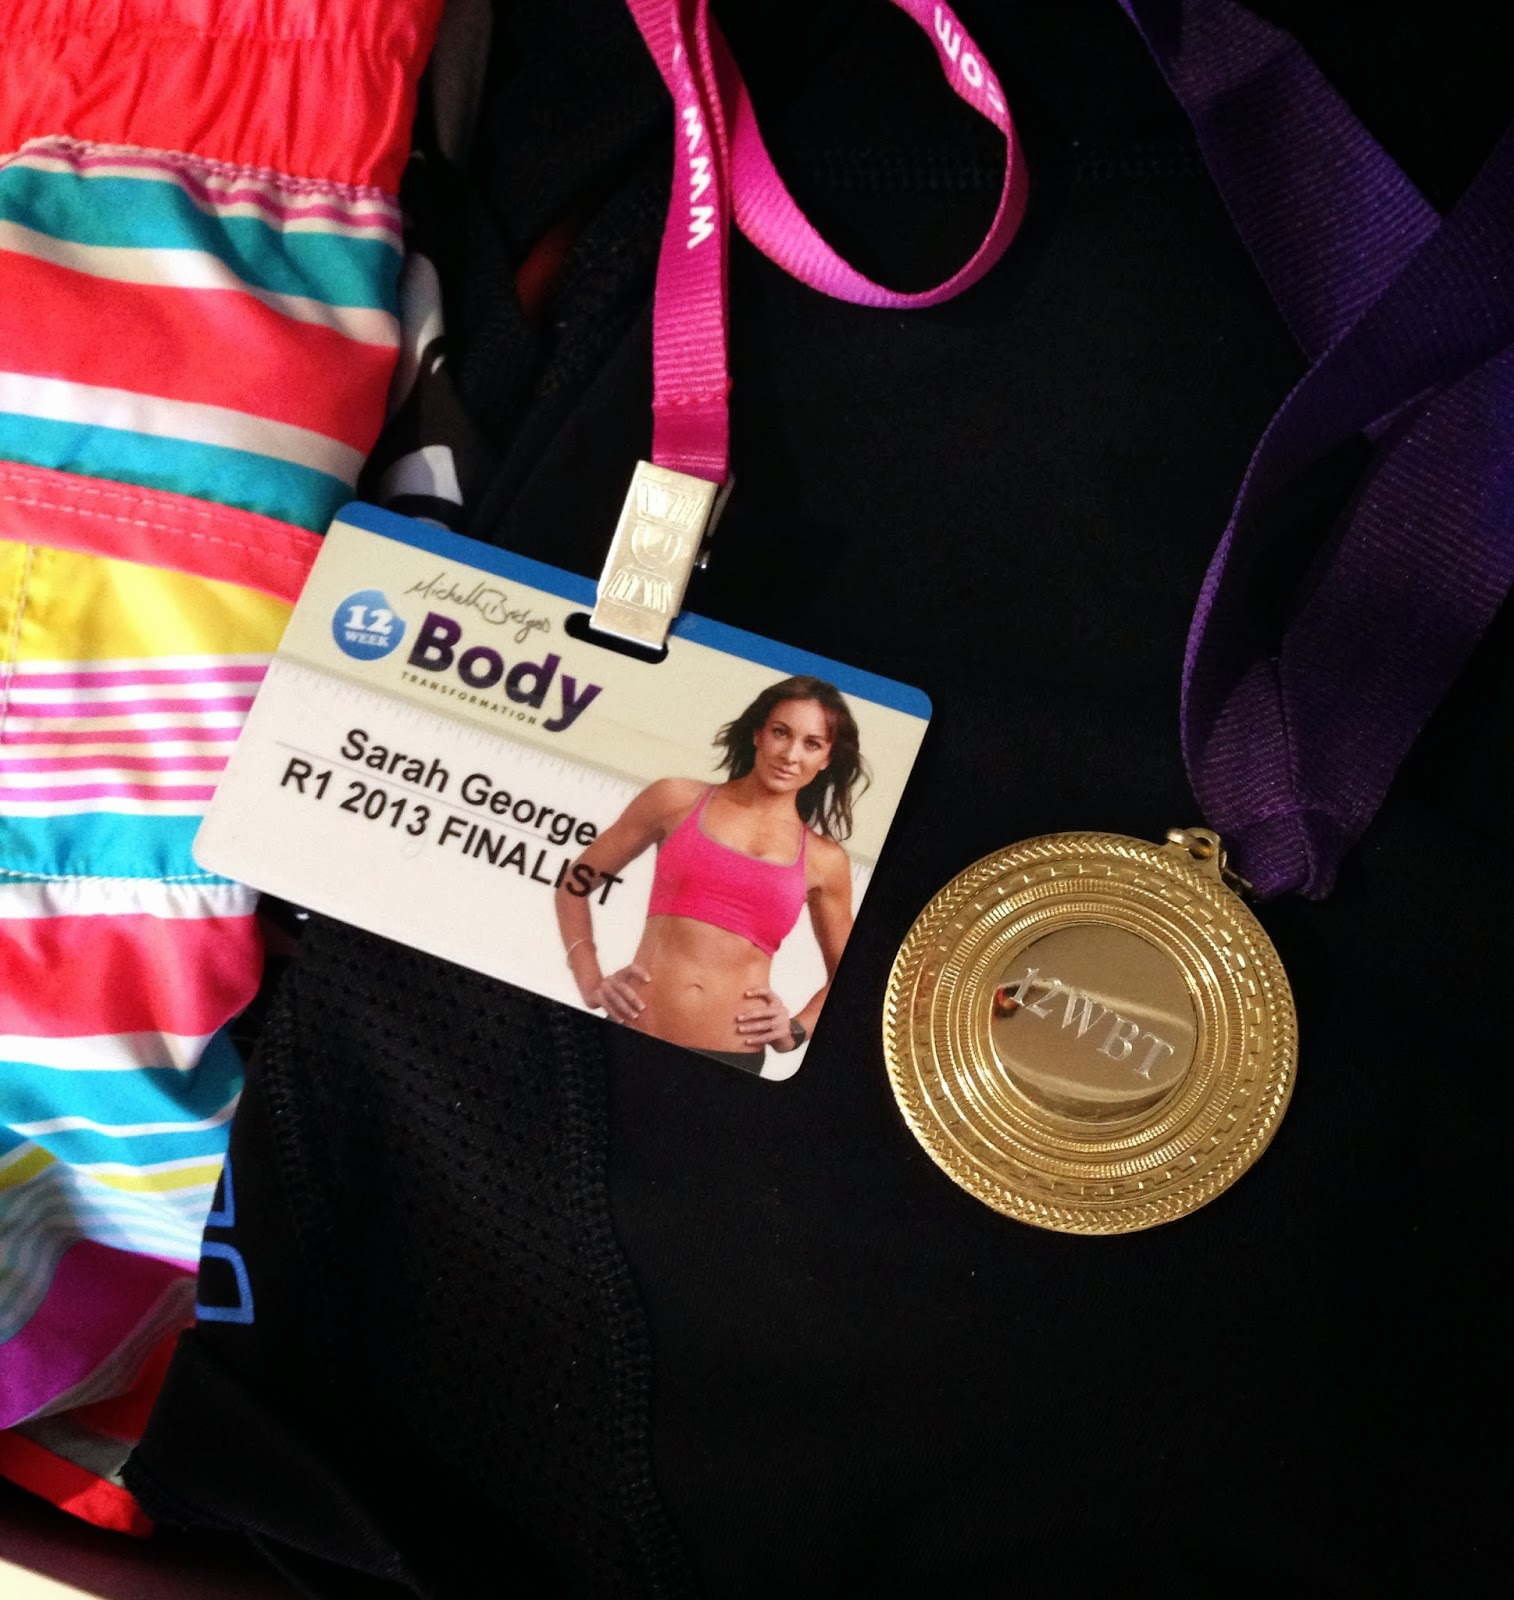 12WBT, Michelle Bridges 12WBT, Win a 12WBT Membership, 12WBT review, exercise, fitness, nutrition, giveaway, win